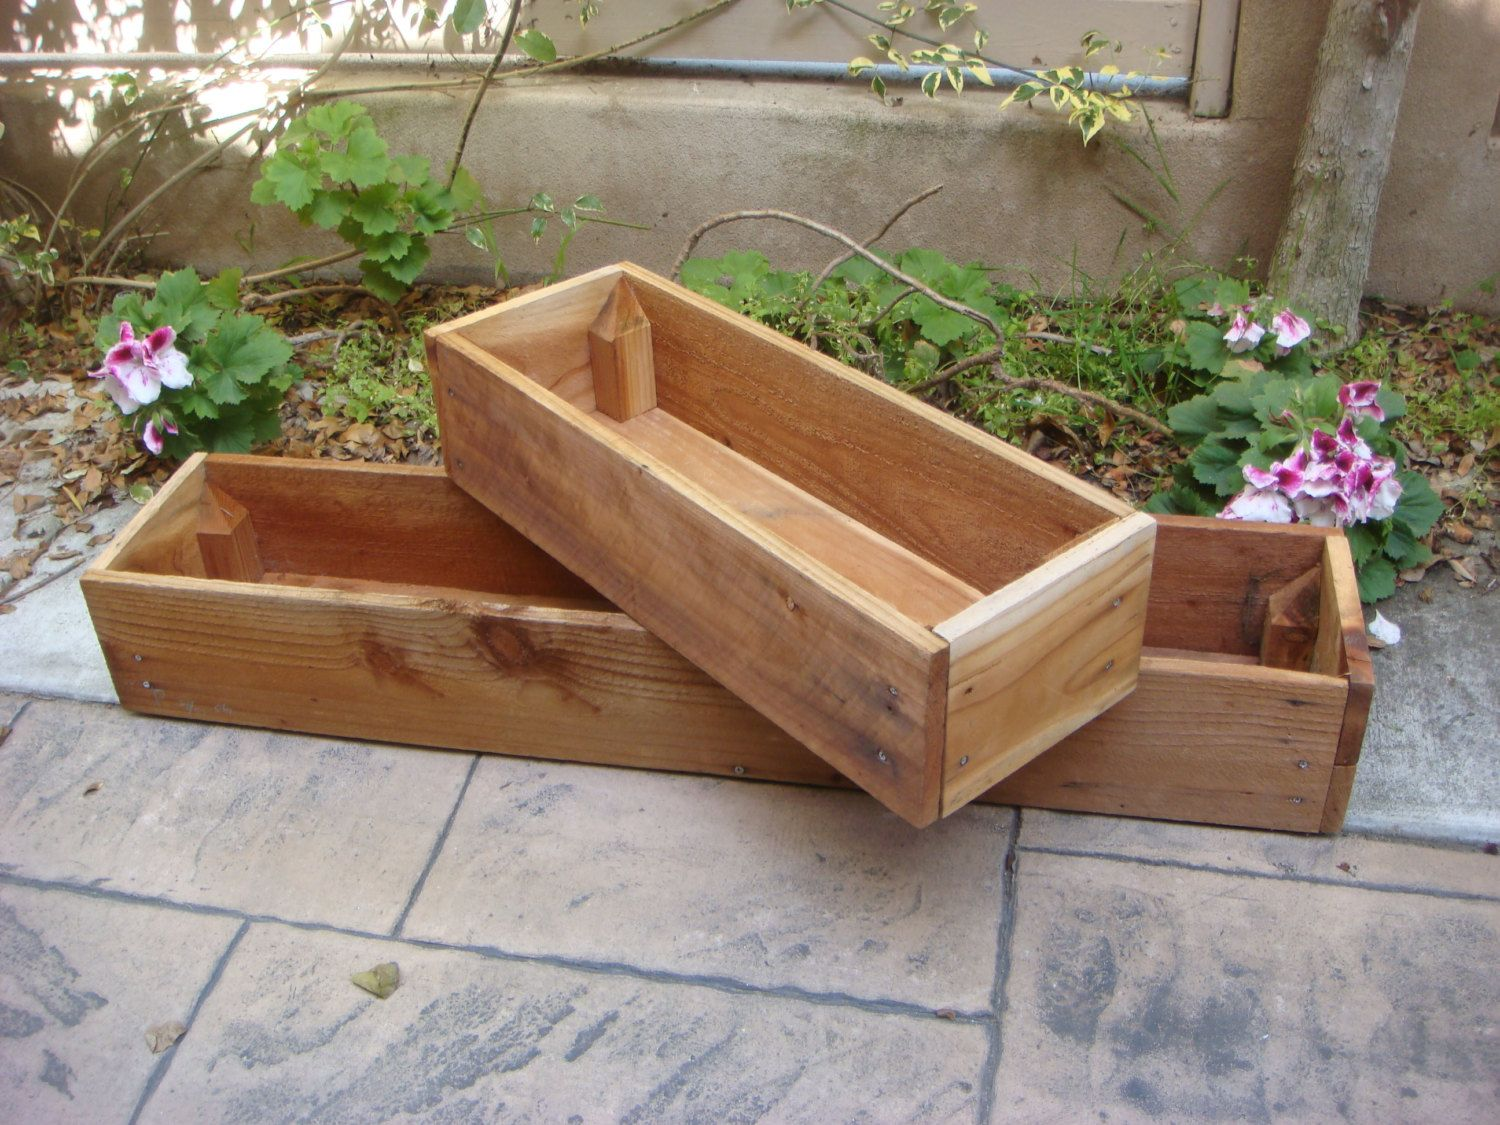 Choosing Wooden Planters Home and Interior Design Ideas